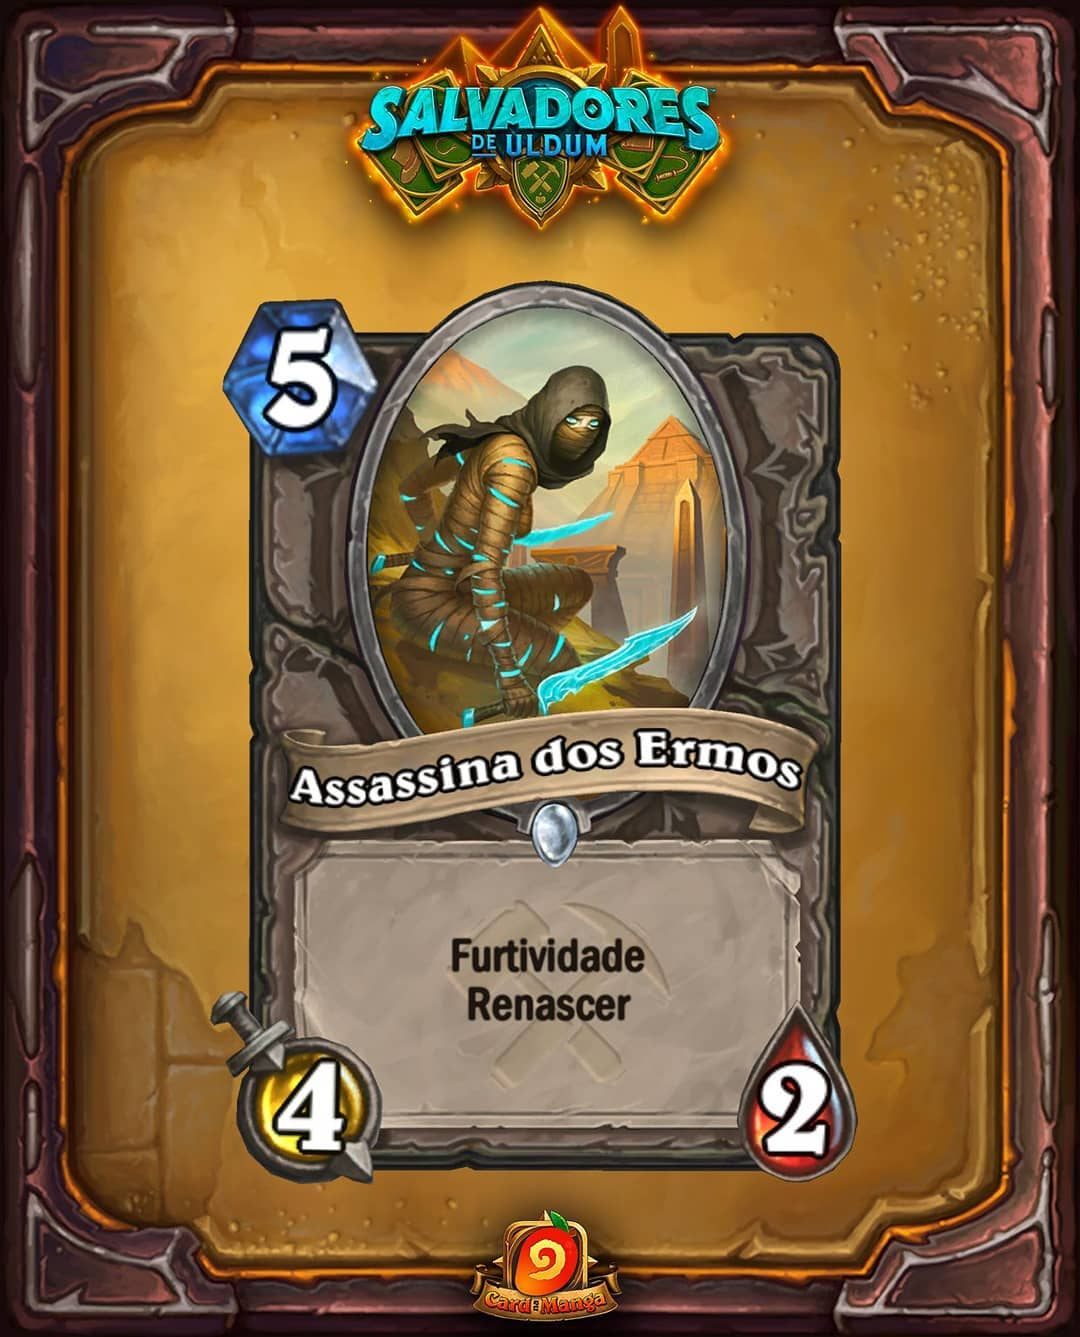 Assassina dos Ermos - Card Reveal